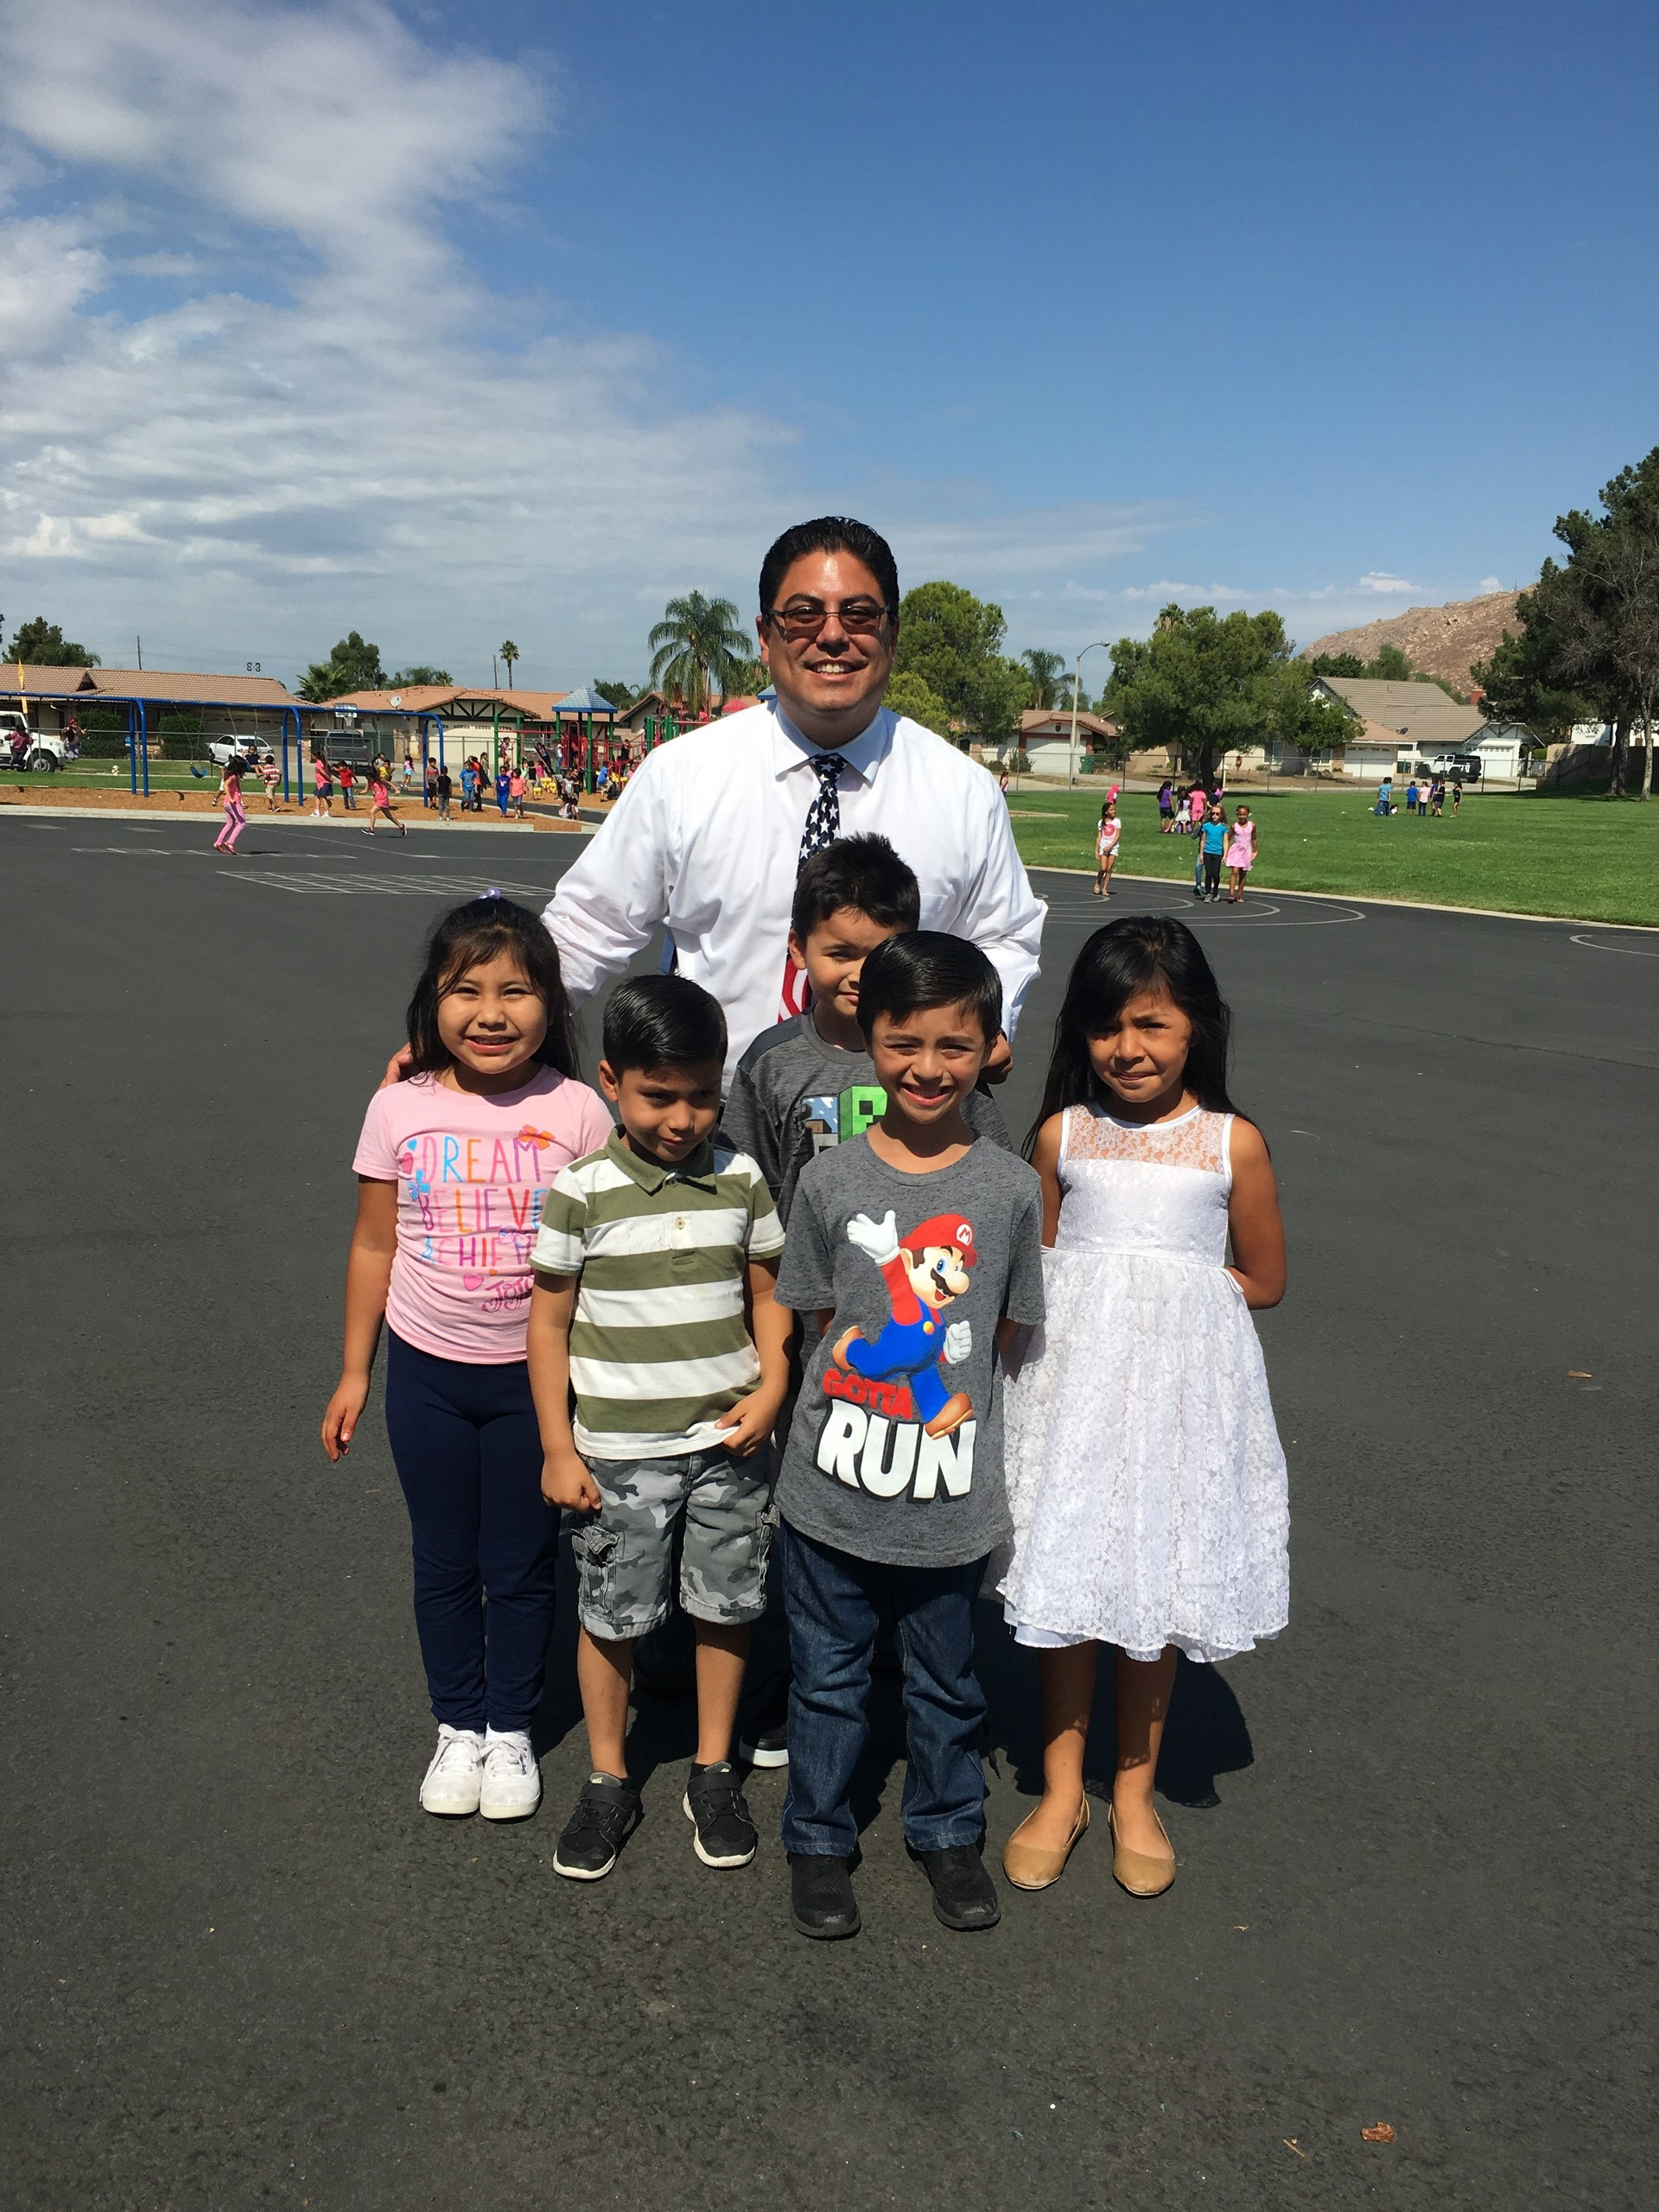 Mr. Palomino with Sunnymeadows students